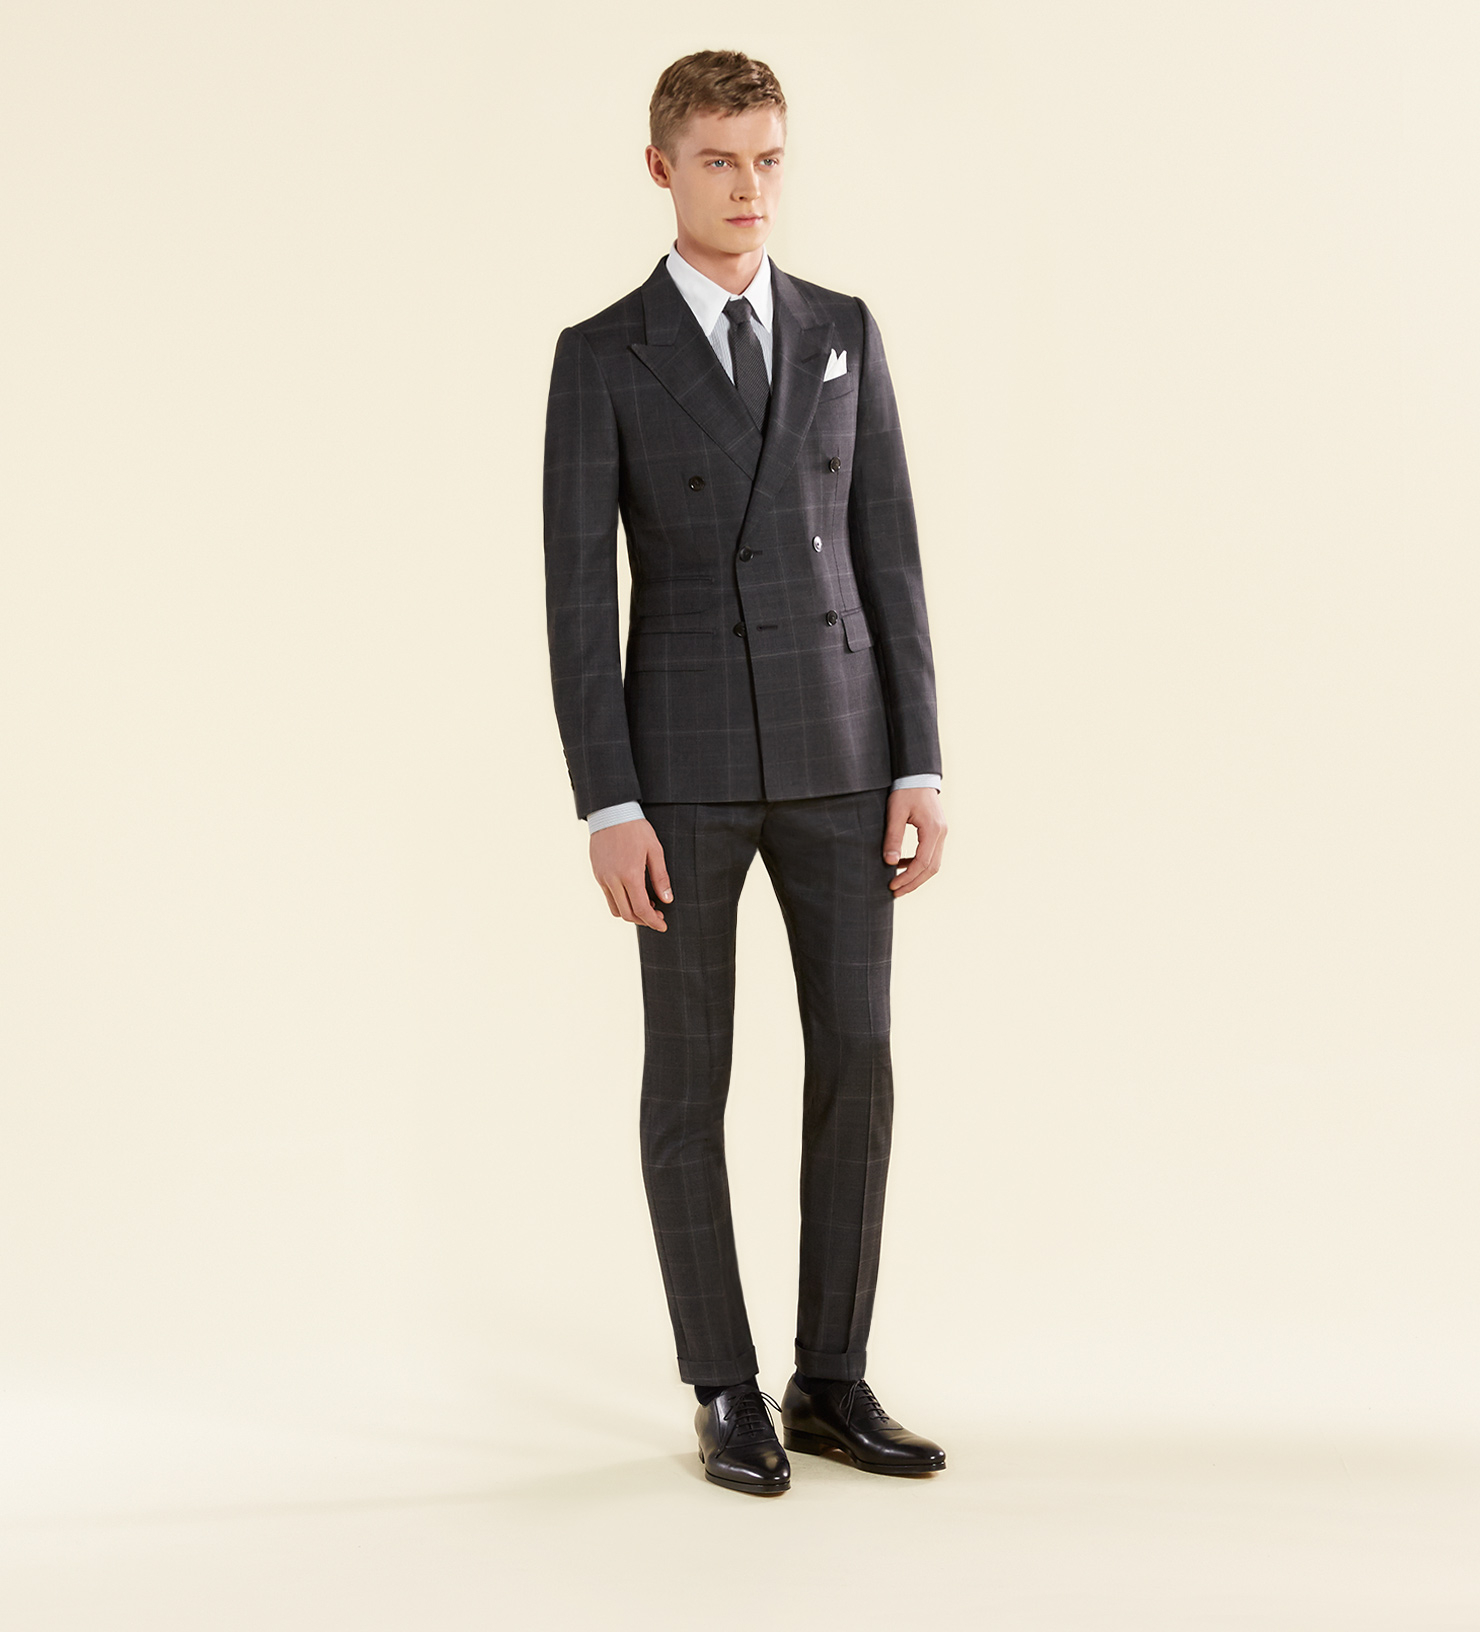 Gucci New Signoria Check Wool Suit In Gray For Men Lyst